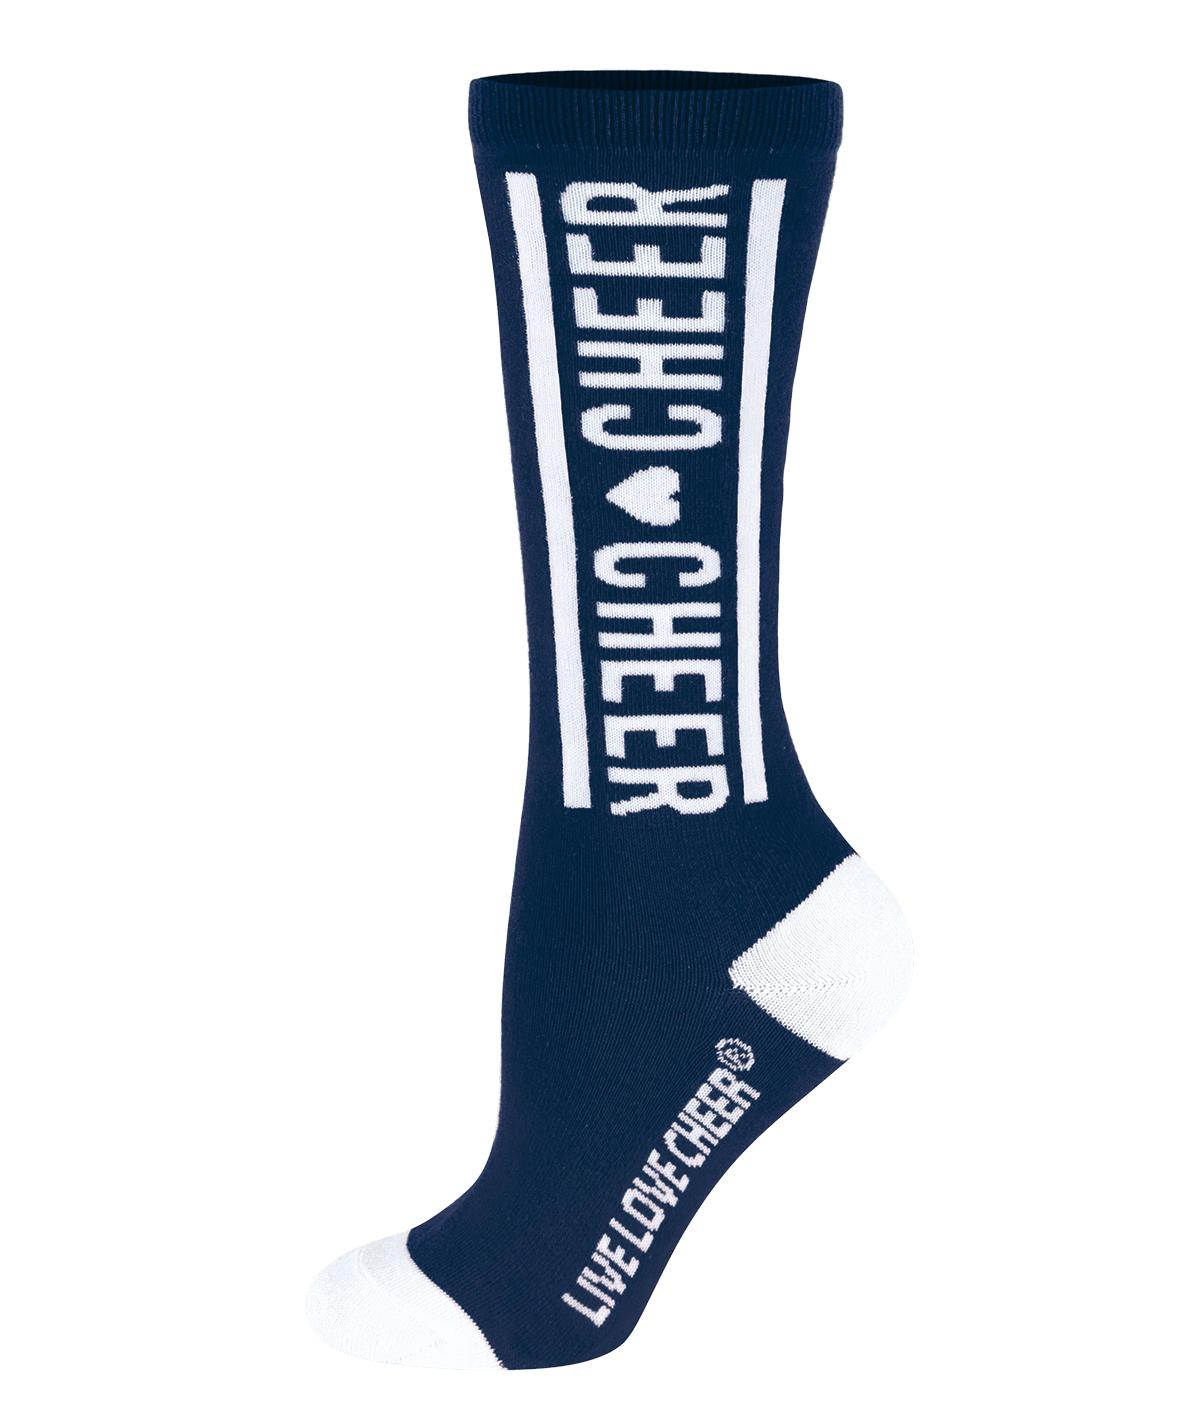 Chasse Knee-High Cheer Sock